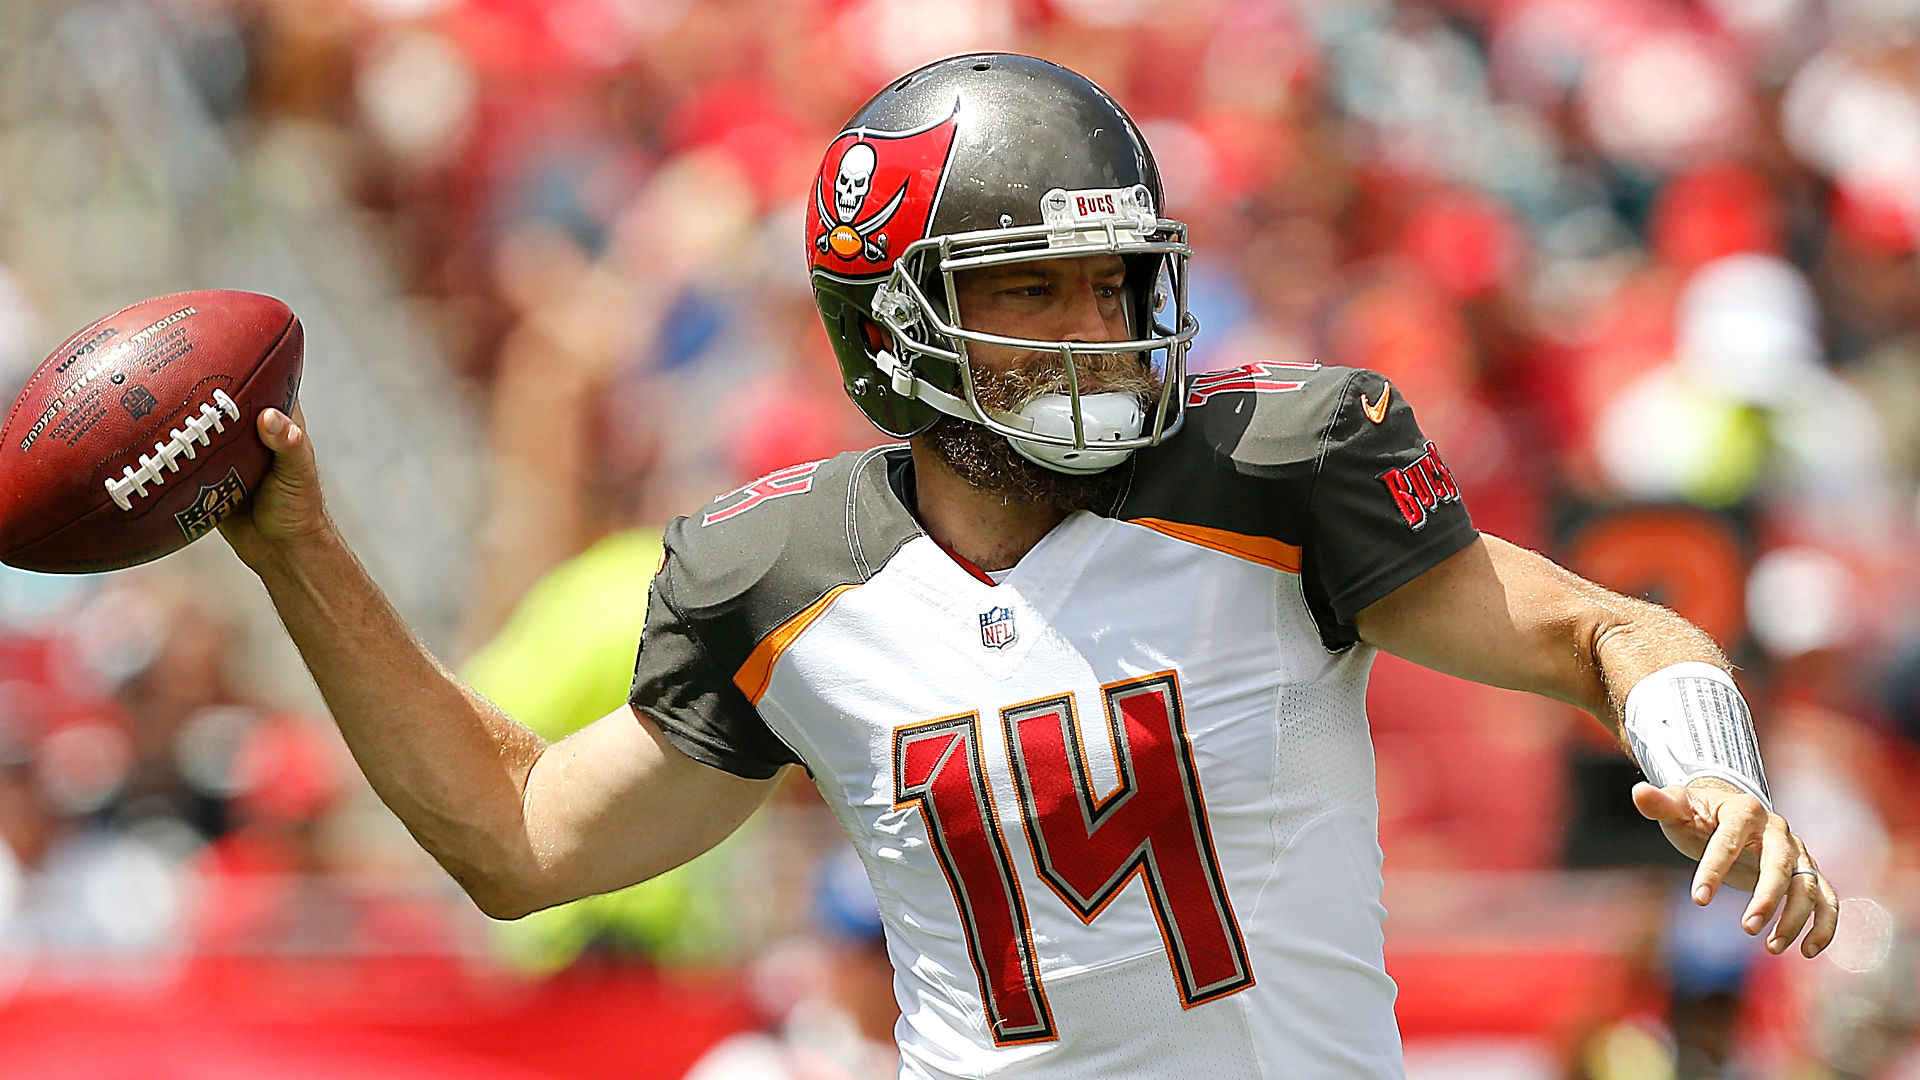 Bucs coach Dirk Koetter: Ryan Fitzpatrick, Jameis Winston know plan, but he won't divulge QB starter